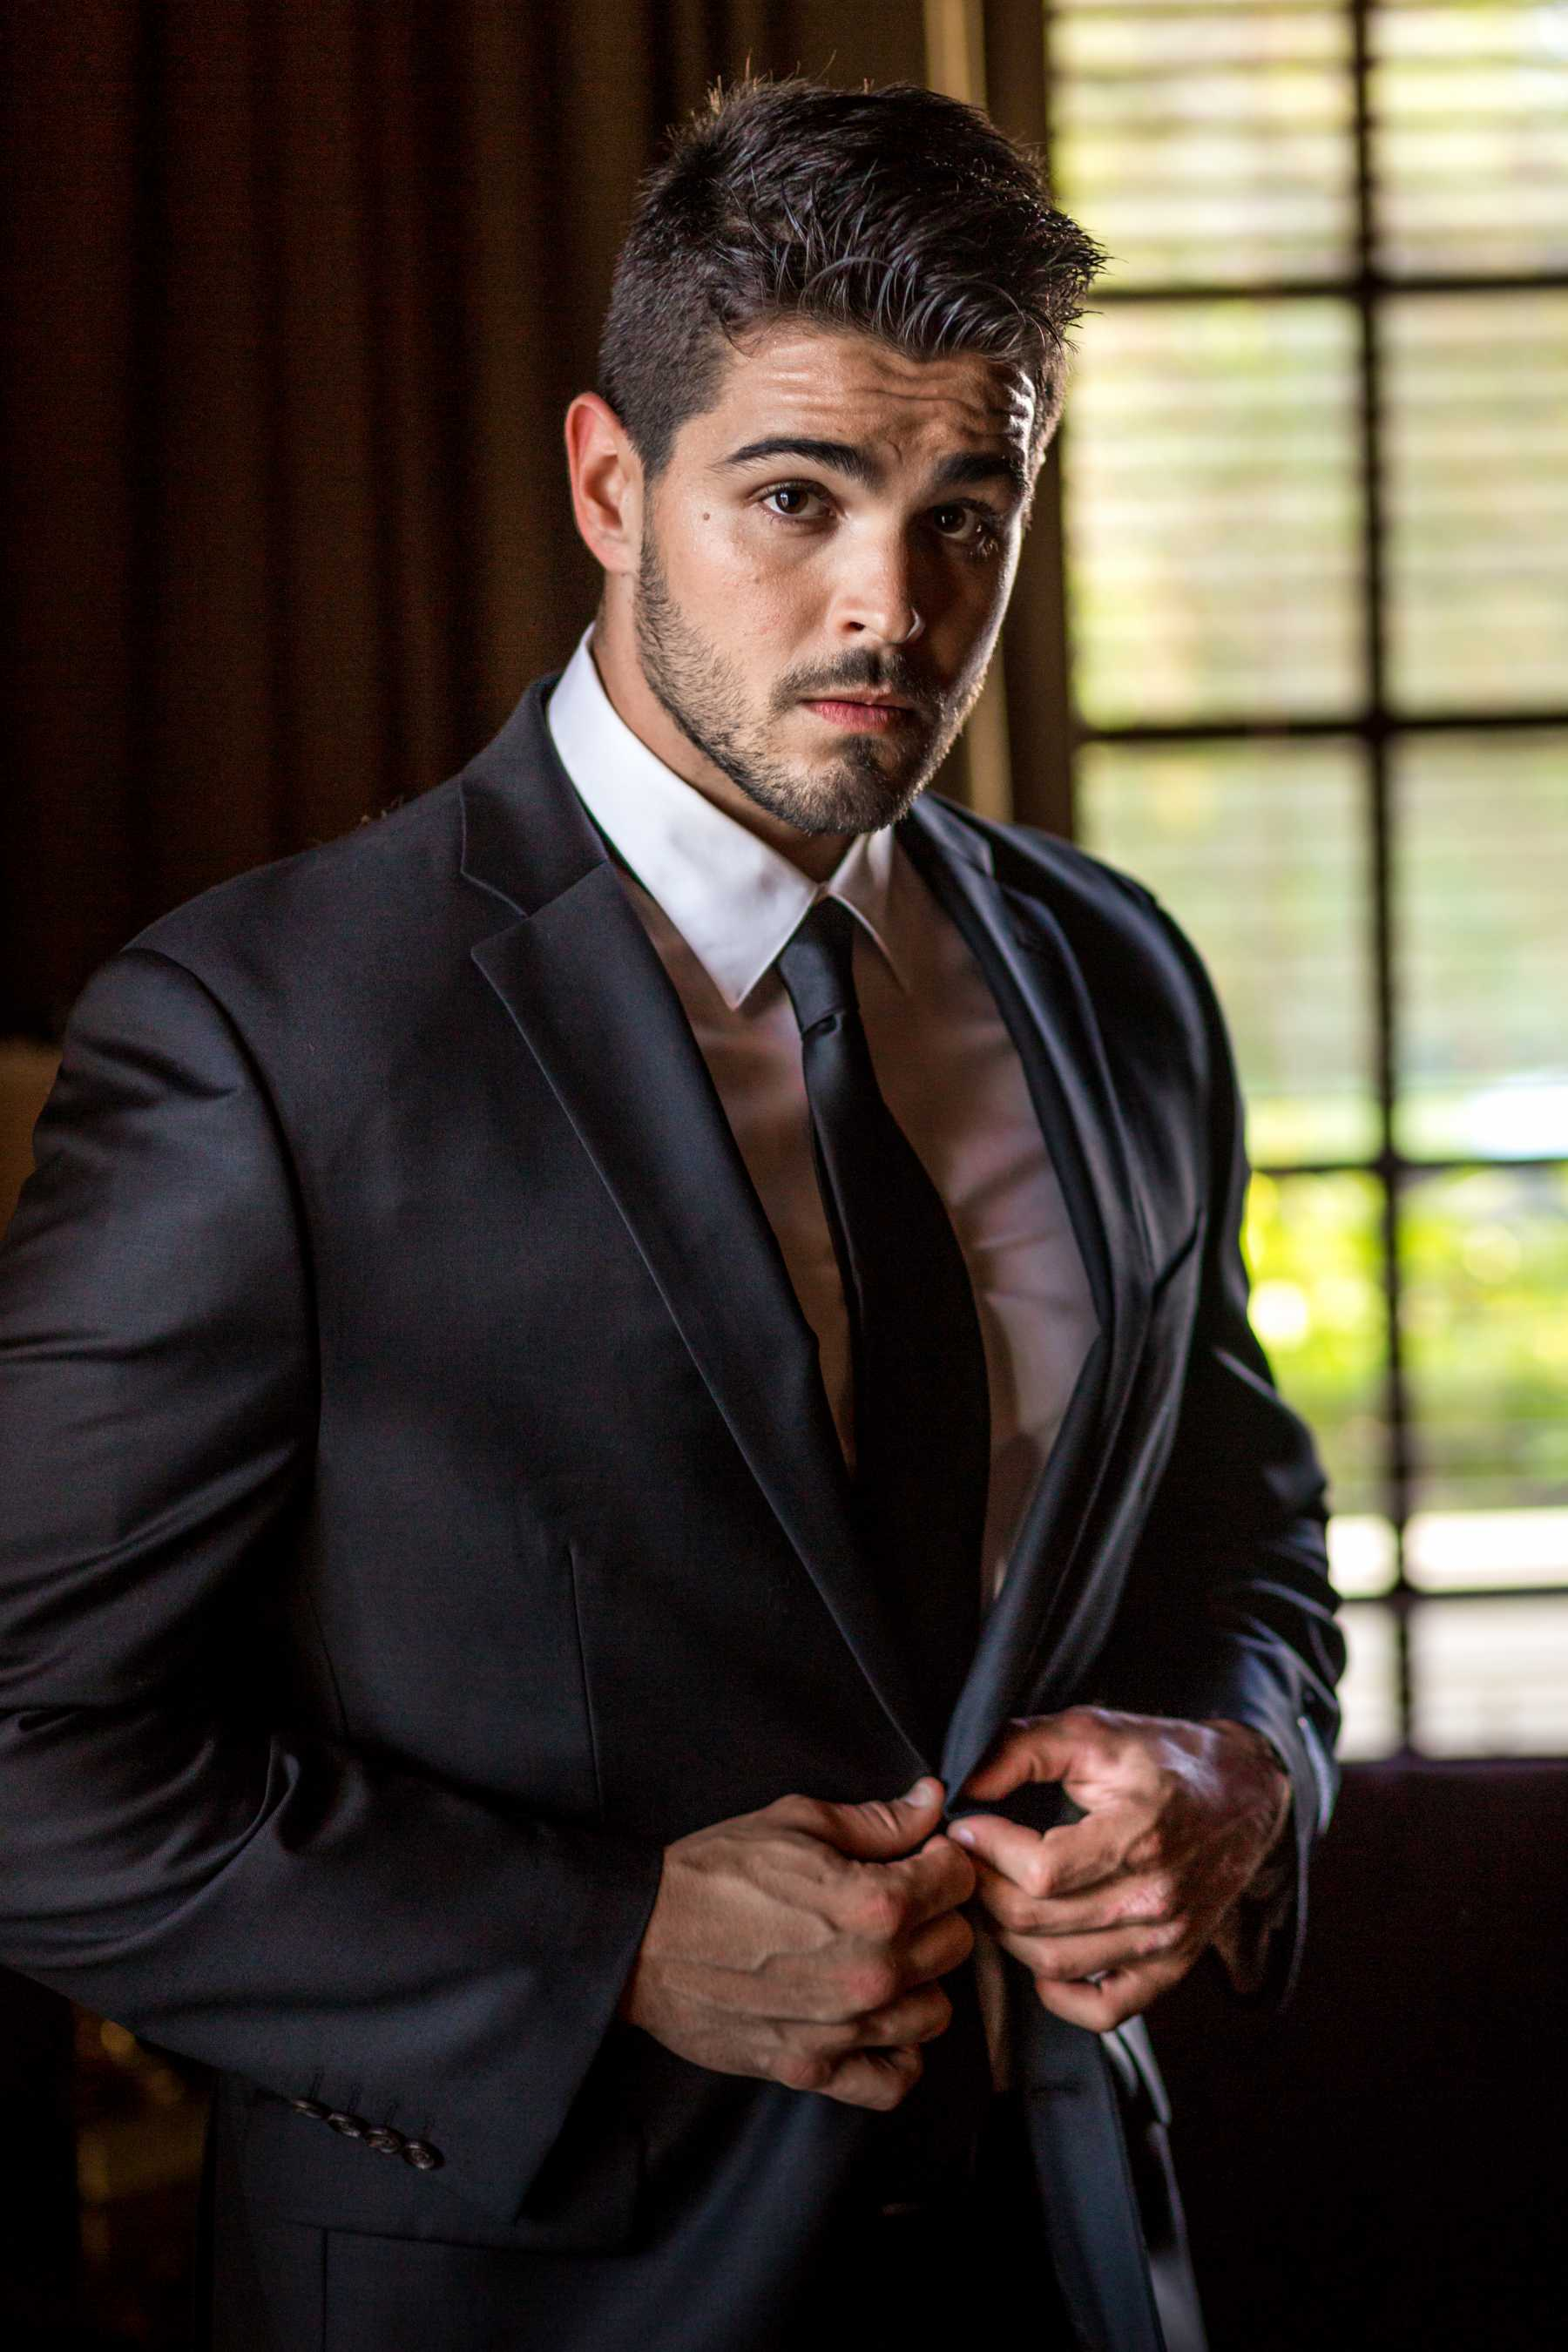 Daniel Rengering Joins The Grammys 2019 As Red Carpet Correspondent & Host